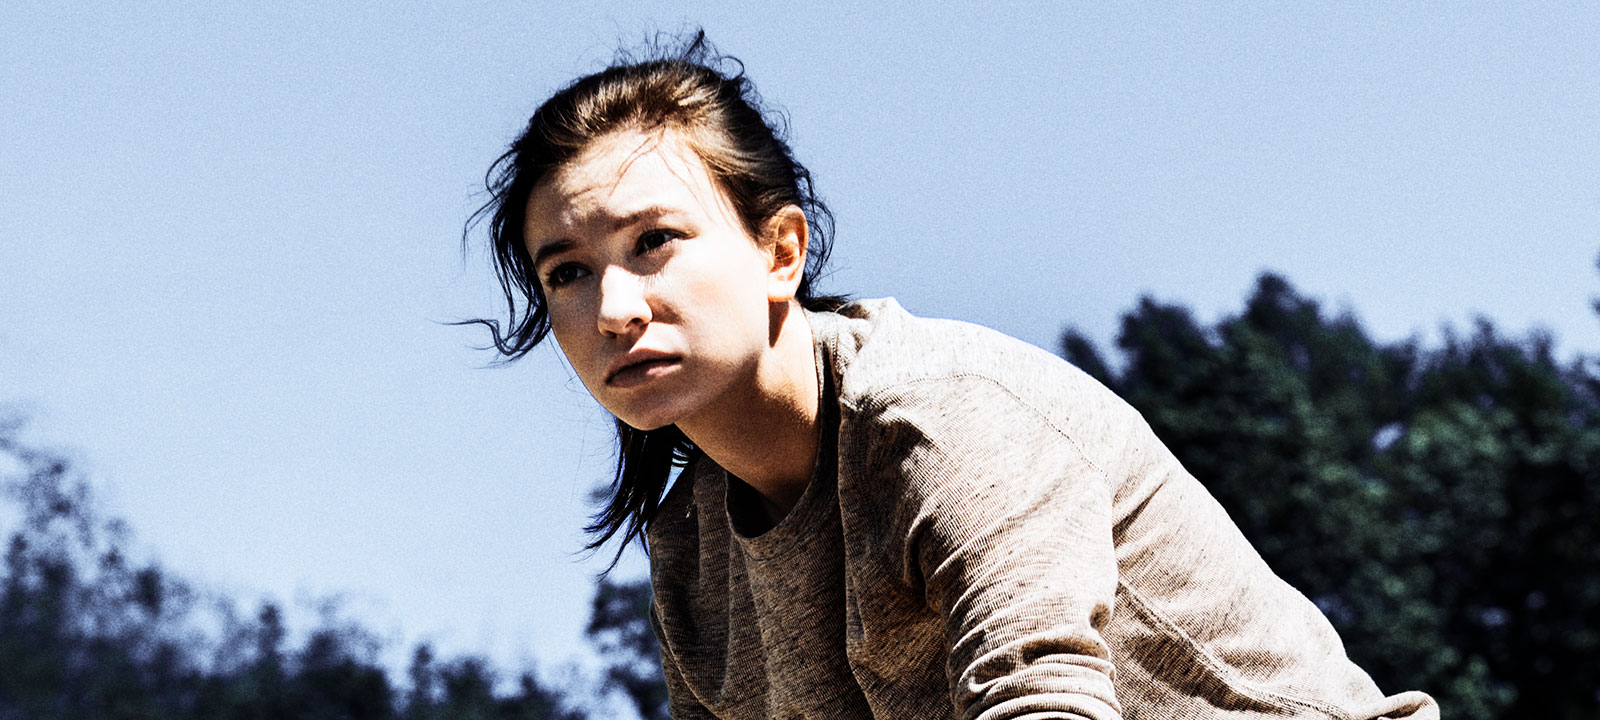 the-walking-dead-season-8-enid-nacon-800×600-interview